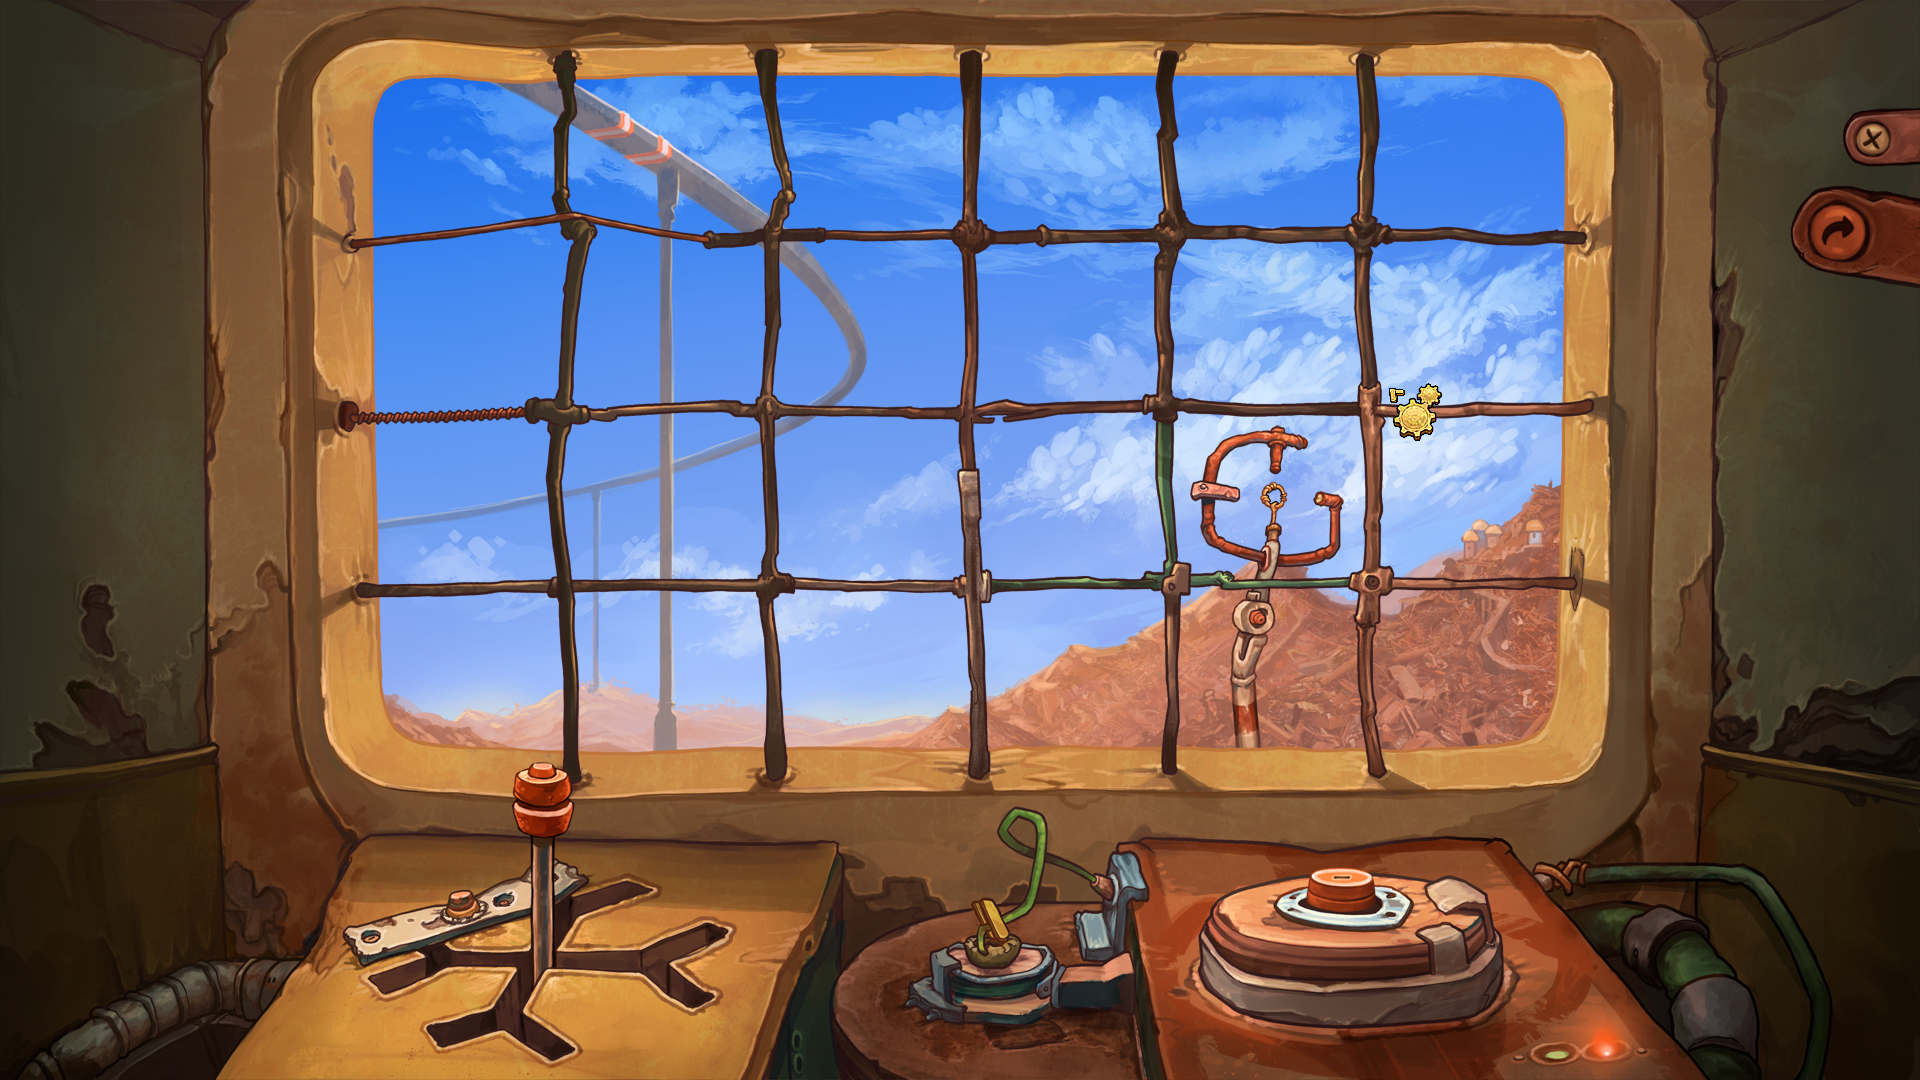 Deponia Windows A puzzle